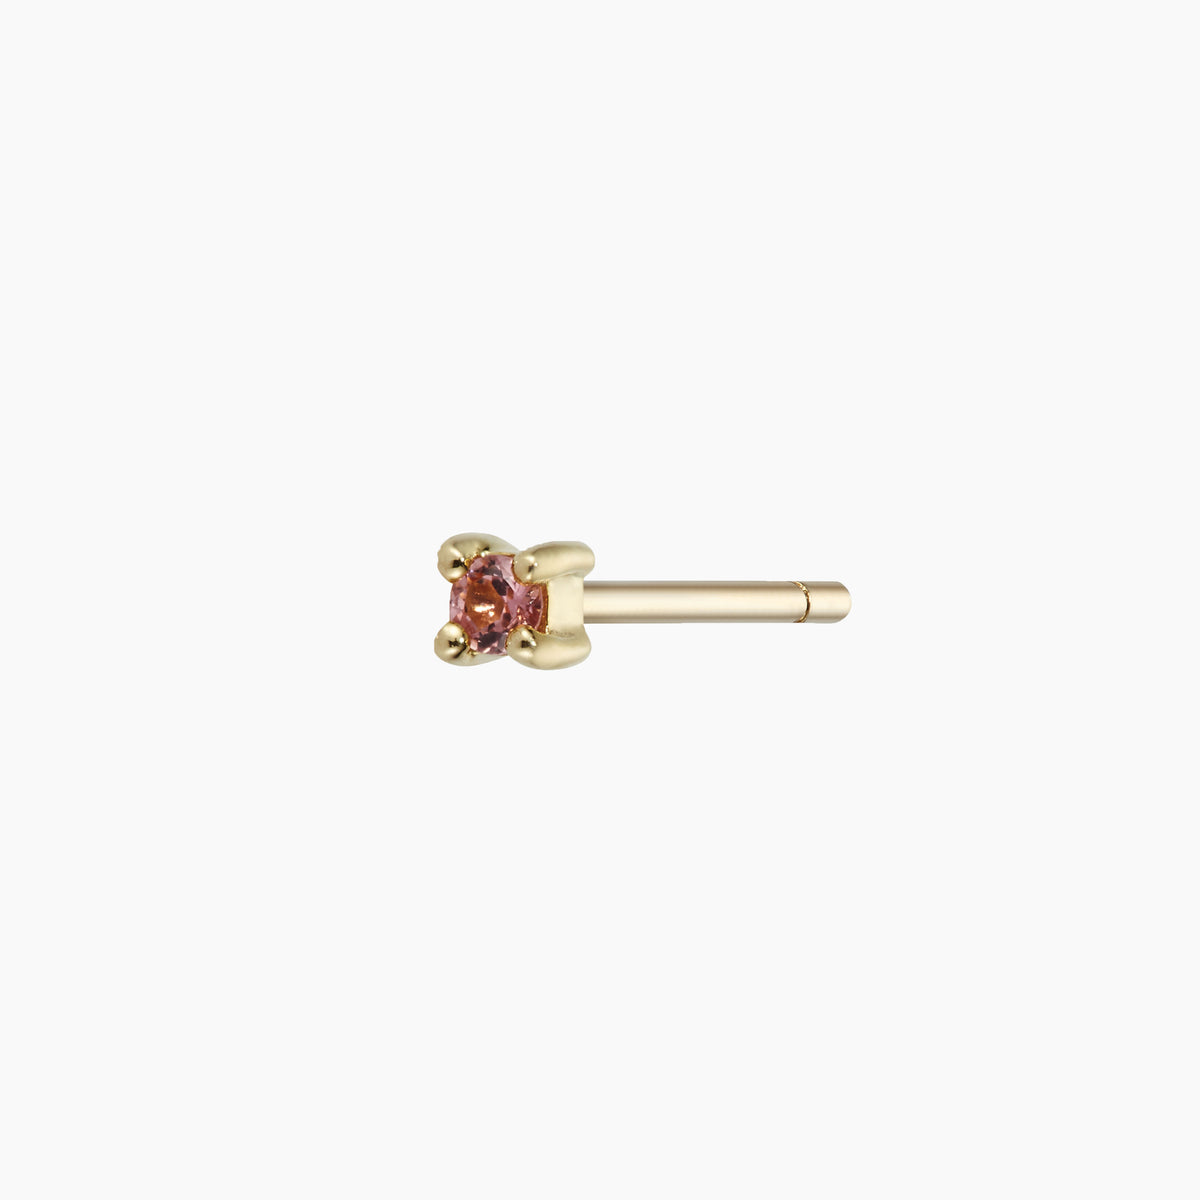 Tiny Pink Tourmaline Stud